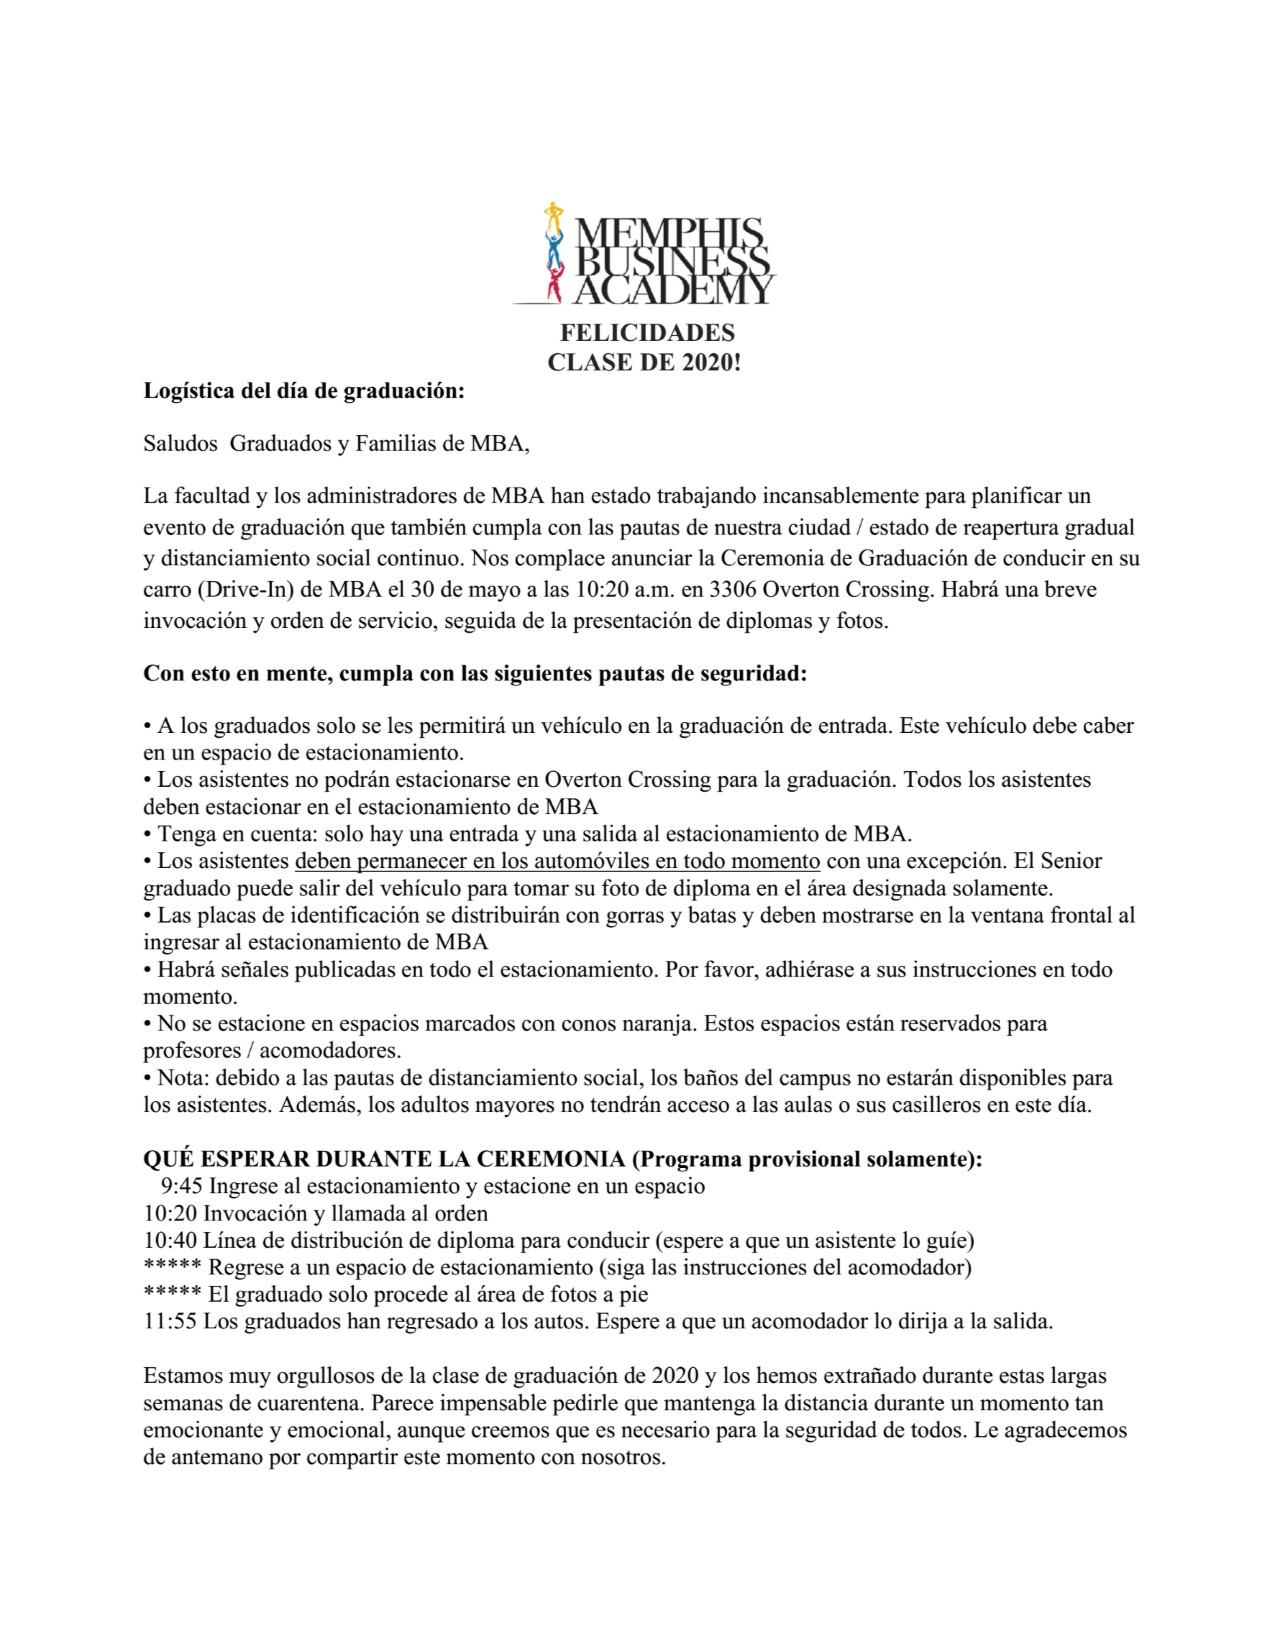 Guidelines Update in SPanish